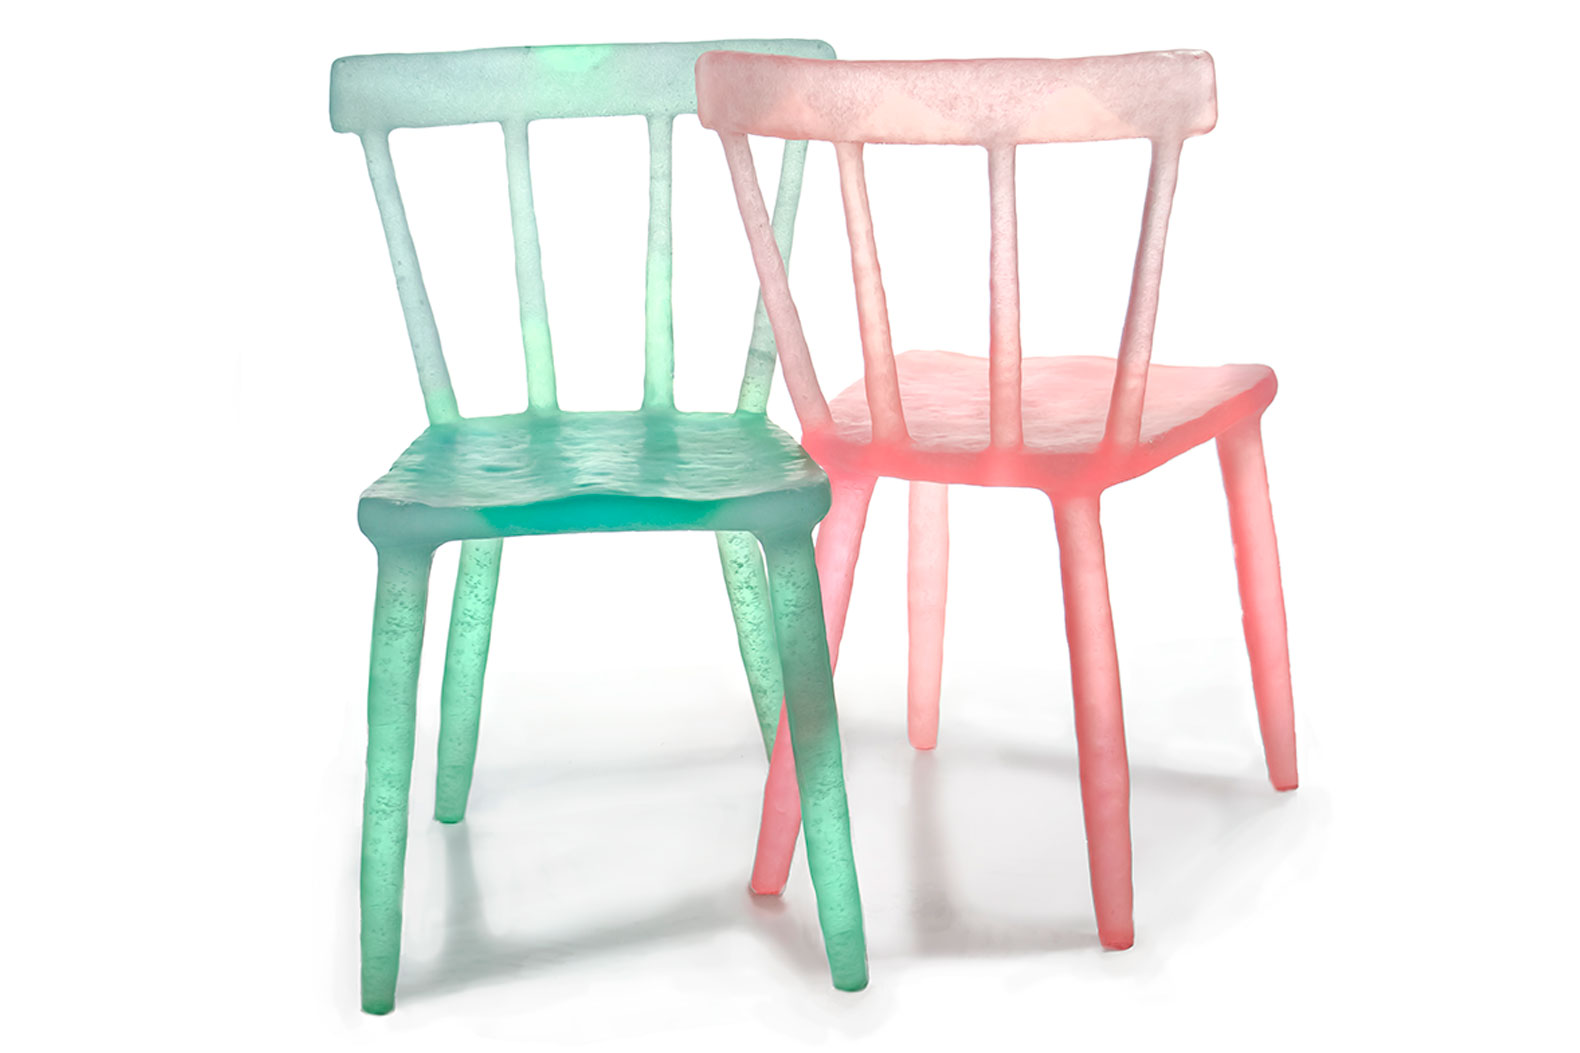 Kim Markelu0027s Candy Colored Recycled Chairs Inject A Juicy Burst Of Fun Into  Any Room | Inhabitat   Green Design, Innovation, Architecture, Green  Building